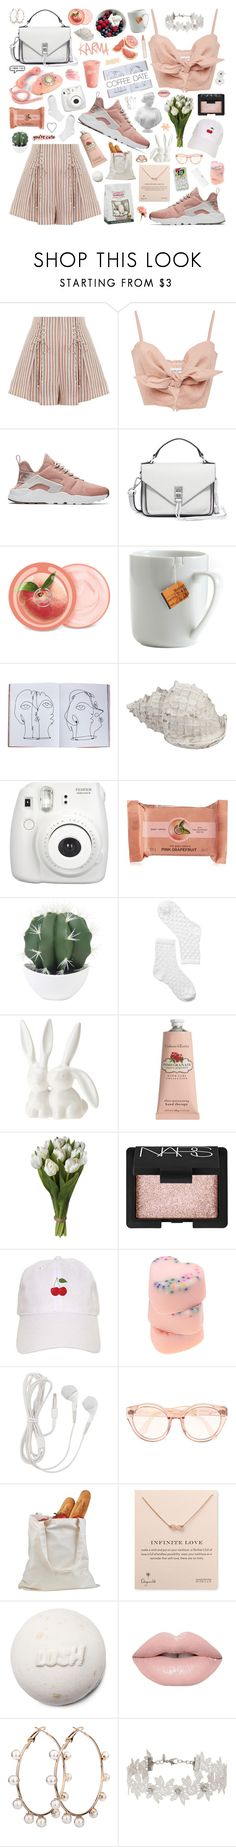 """""""coffee date"""" by soft-bites ❤ liked on Polyvore featuring Zimmermann, Faithfull, NIKE, Rebecca Minkoff, The Body Shop, le mouton noir & co., Assouline Publishing, Disney, Fujifilm and Monki"""